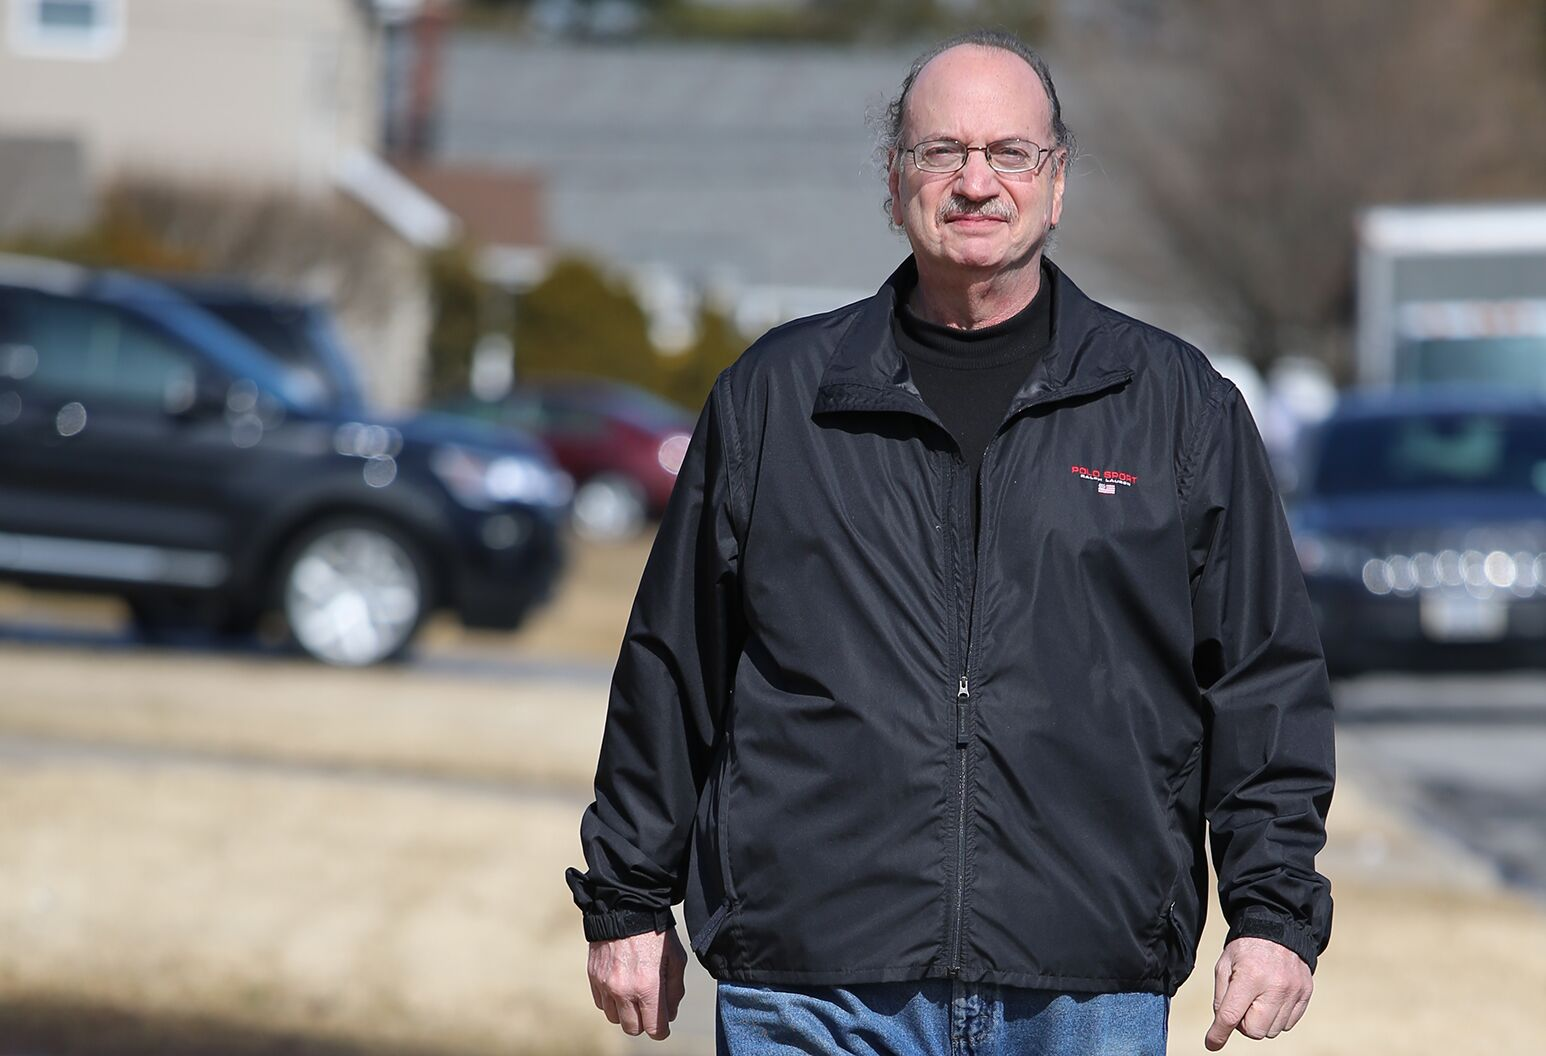 Man in his 60s walks through residential neighborhood.